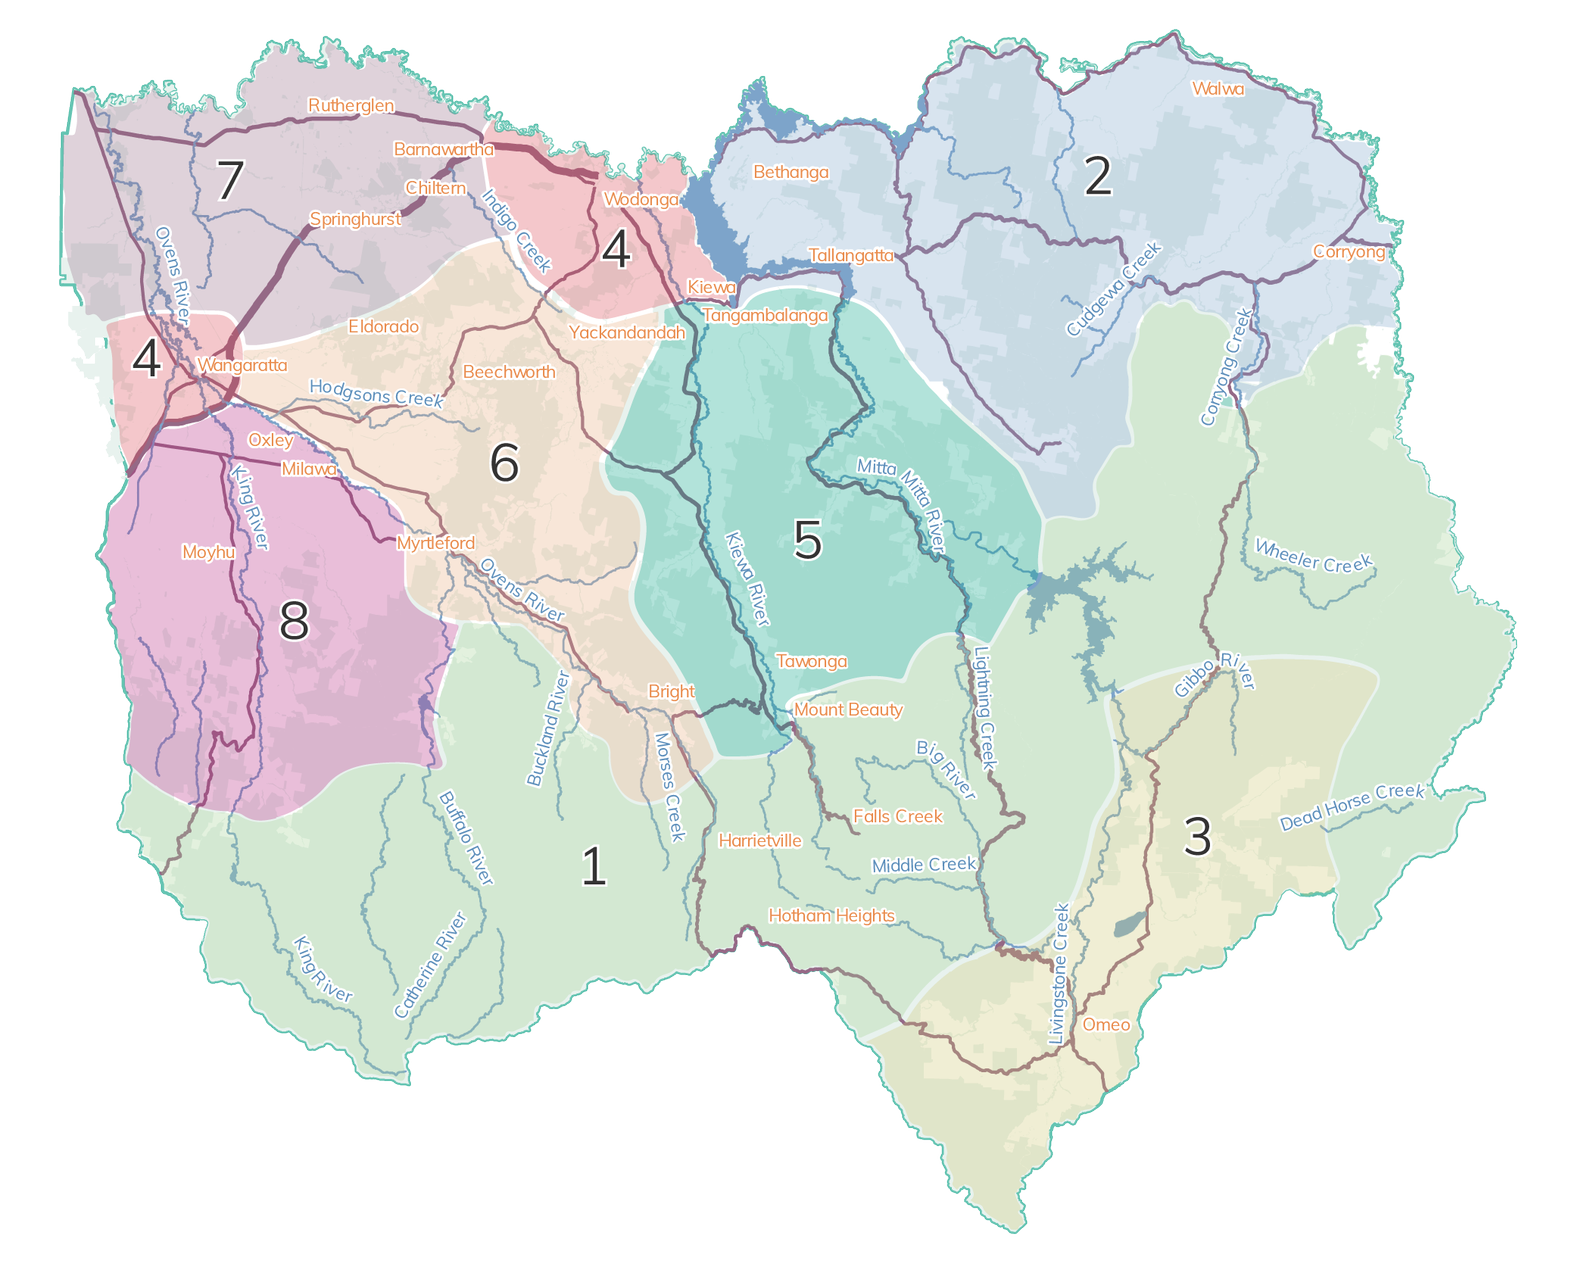 The map shows the eight local landscapes identified for the purpose of local planning as part of the RCS.